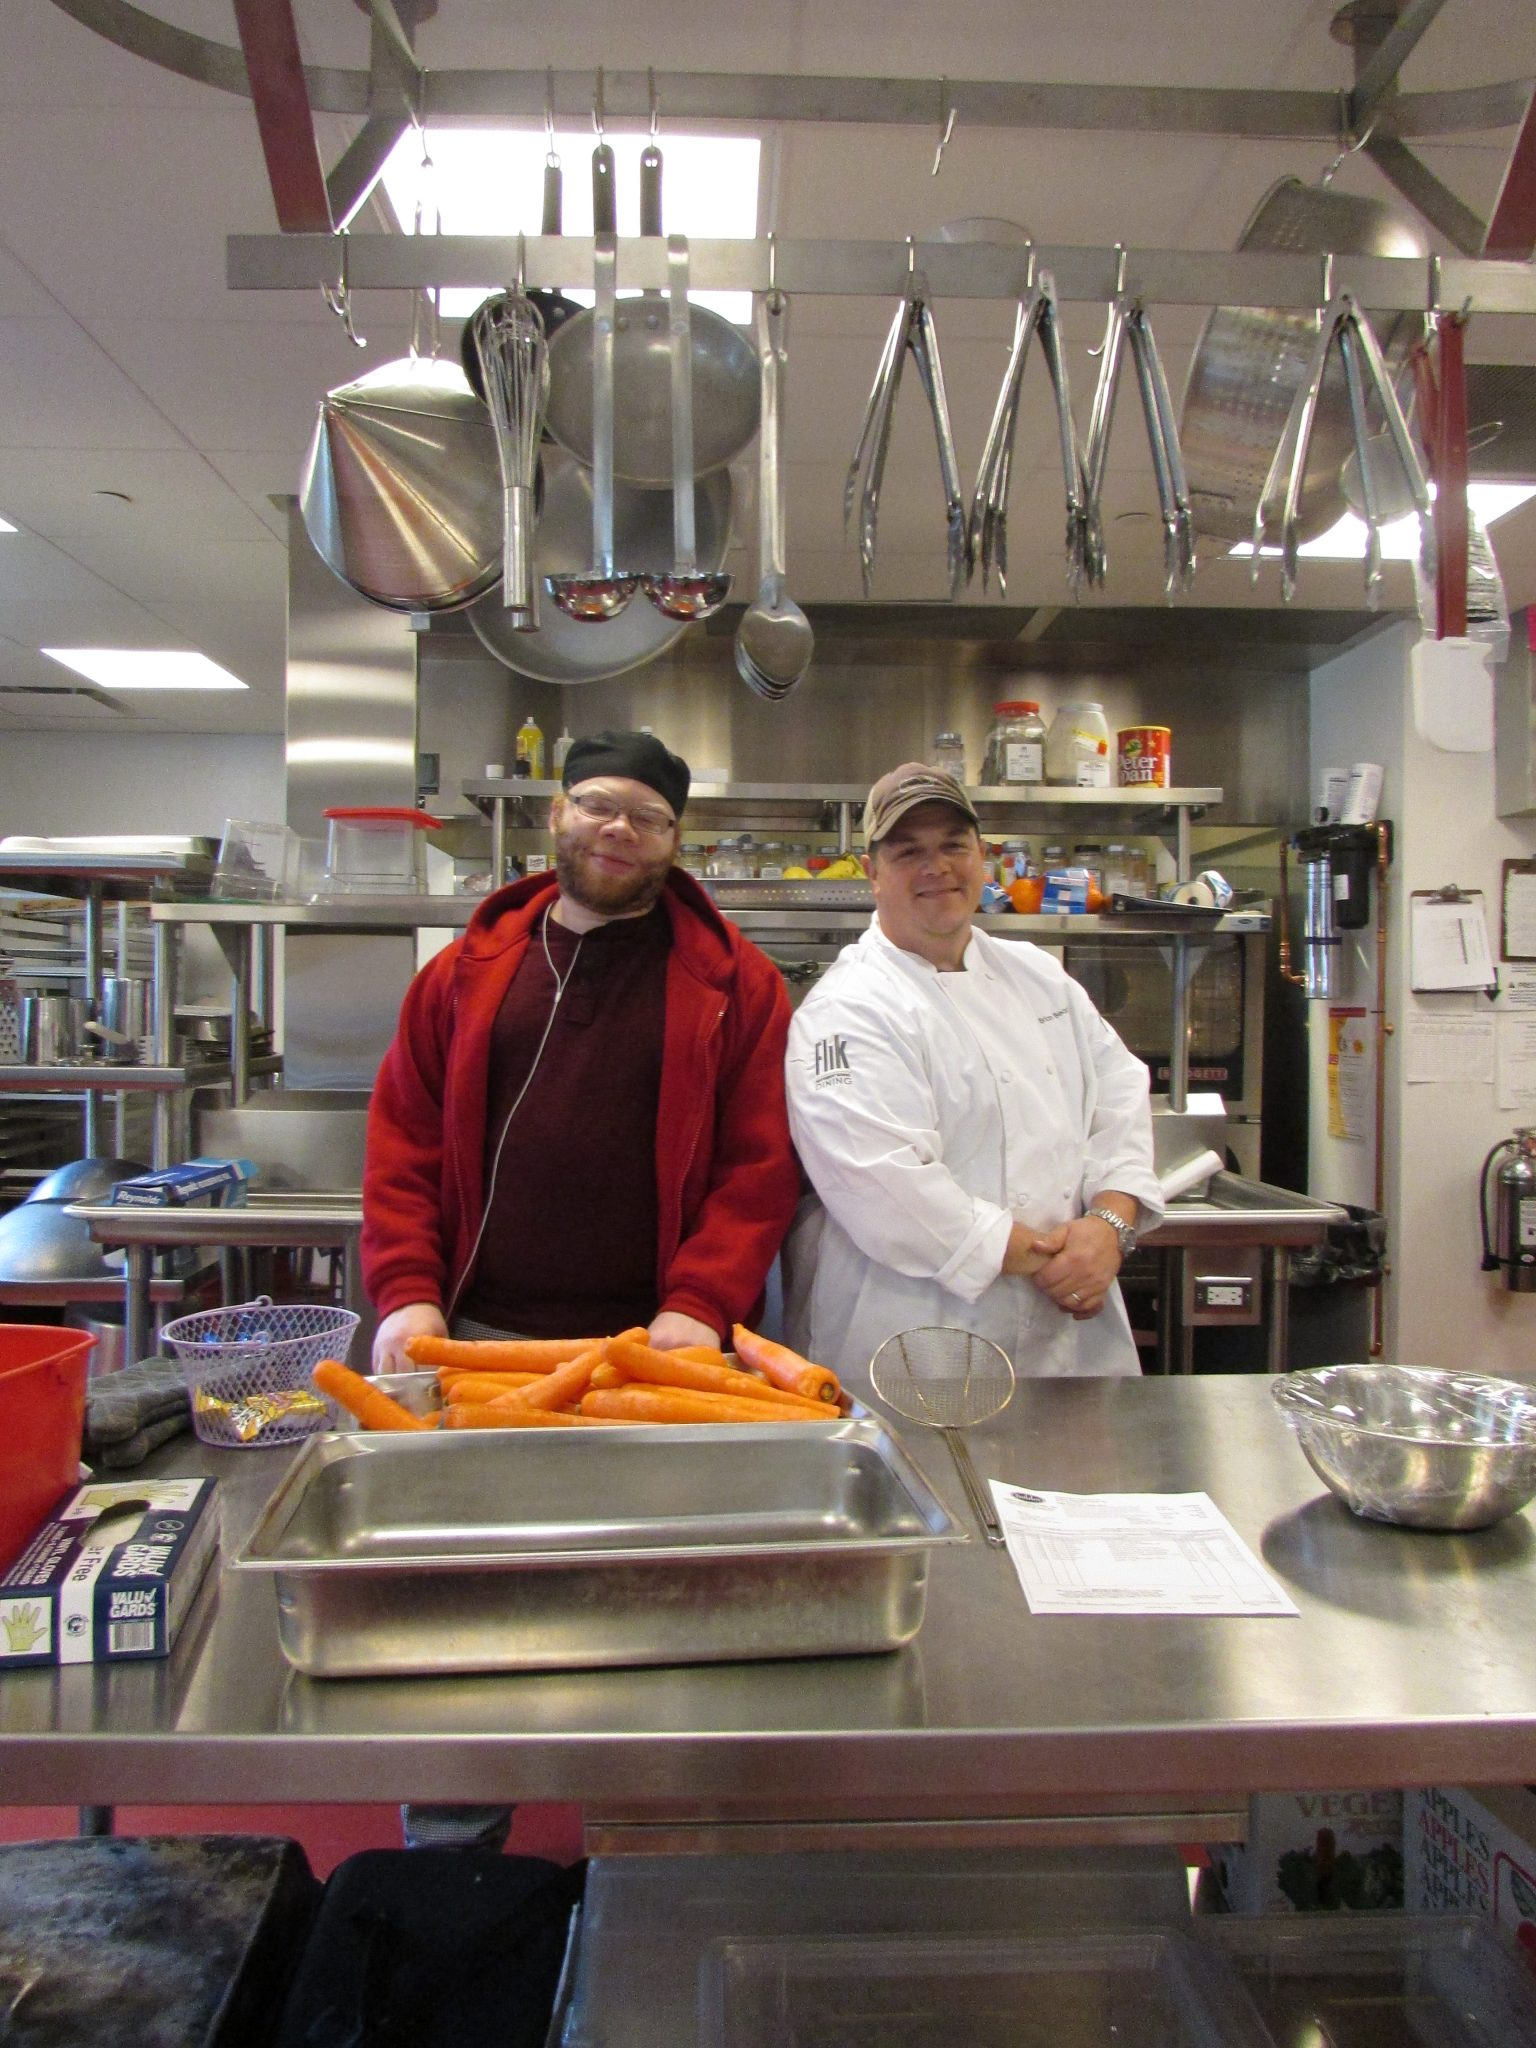 Image description: A man wearing a red sweater and black t-shirt stands next to a man wearing a chef's jacket in a large industrial kitchen. A tray of unchopped carrots sits in front of the men in a metal tray.